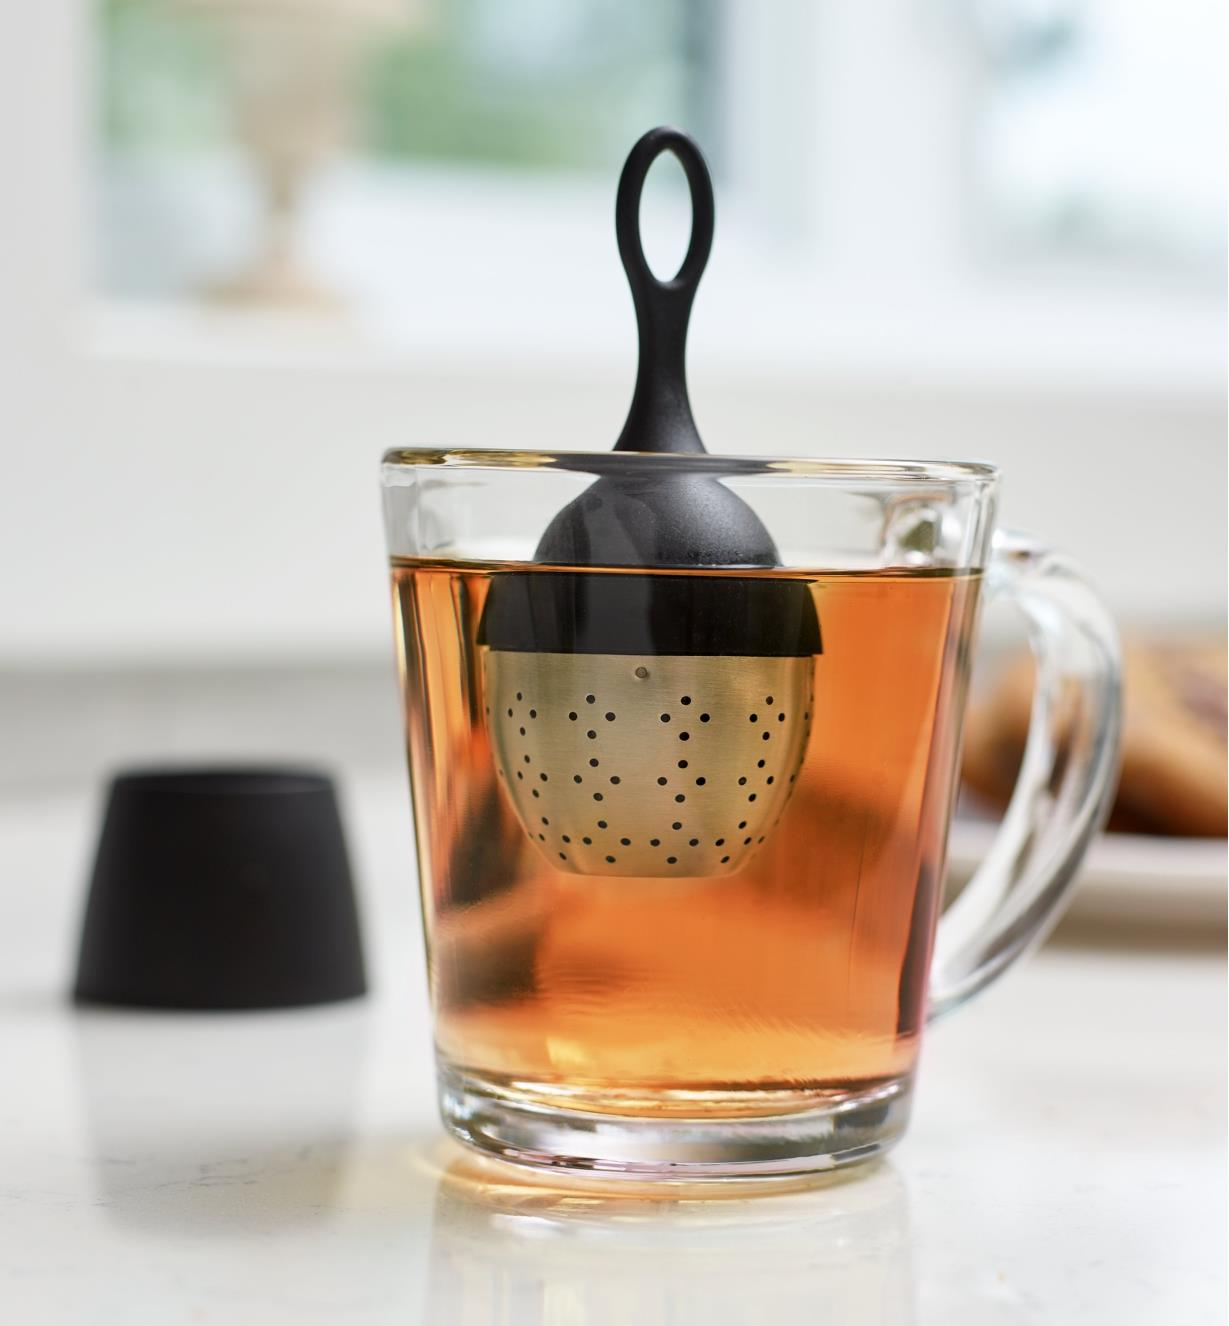 Tea infuser steeping tea in a glass mug